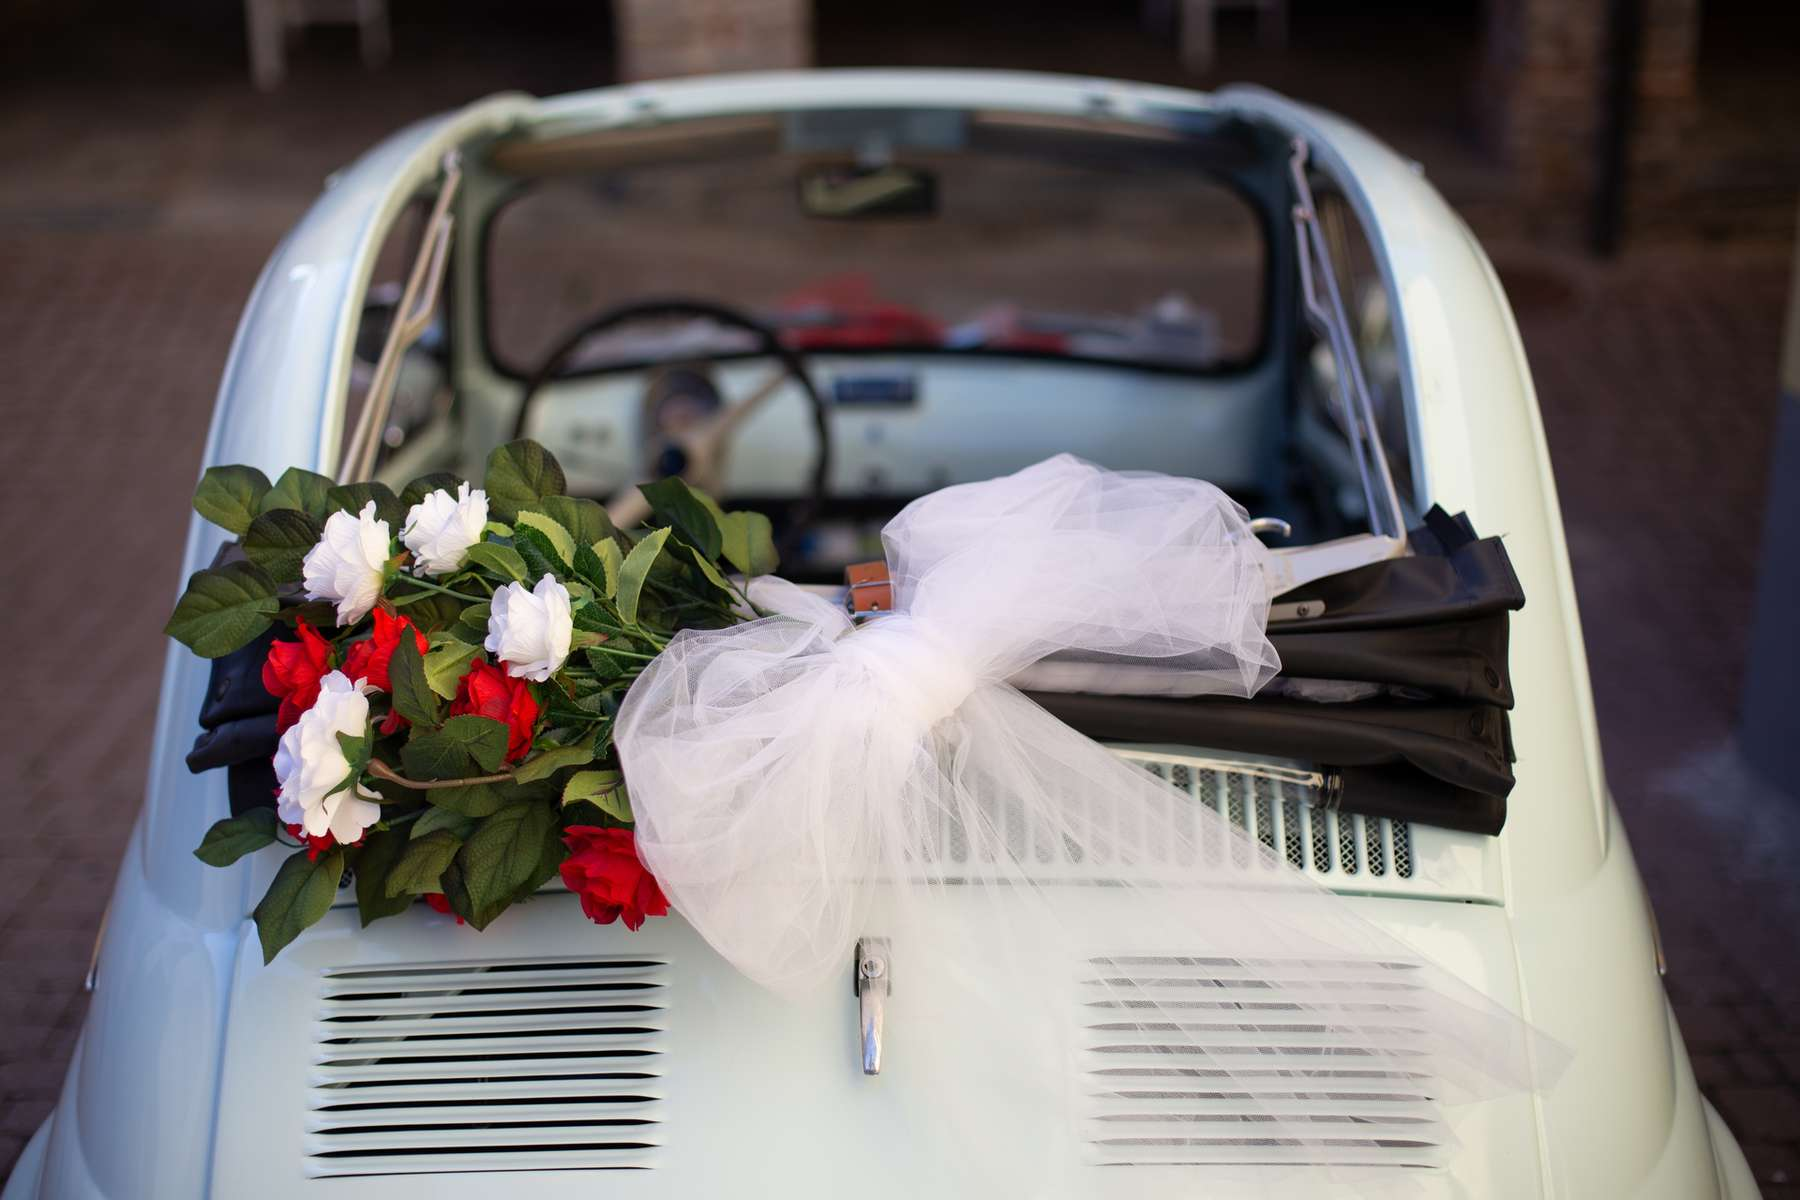 An overhead shot of bouquet of flowers placed at the top of the car with a blurred background